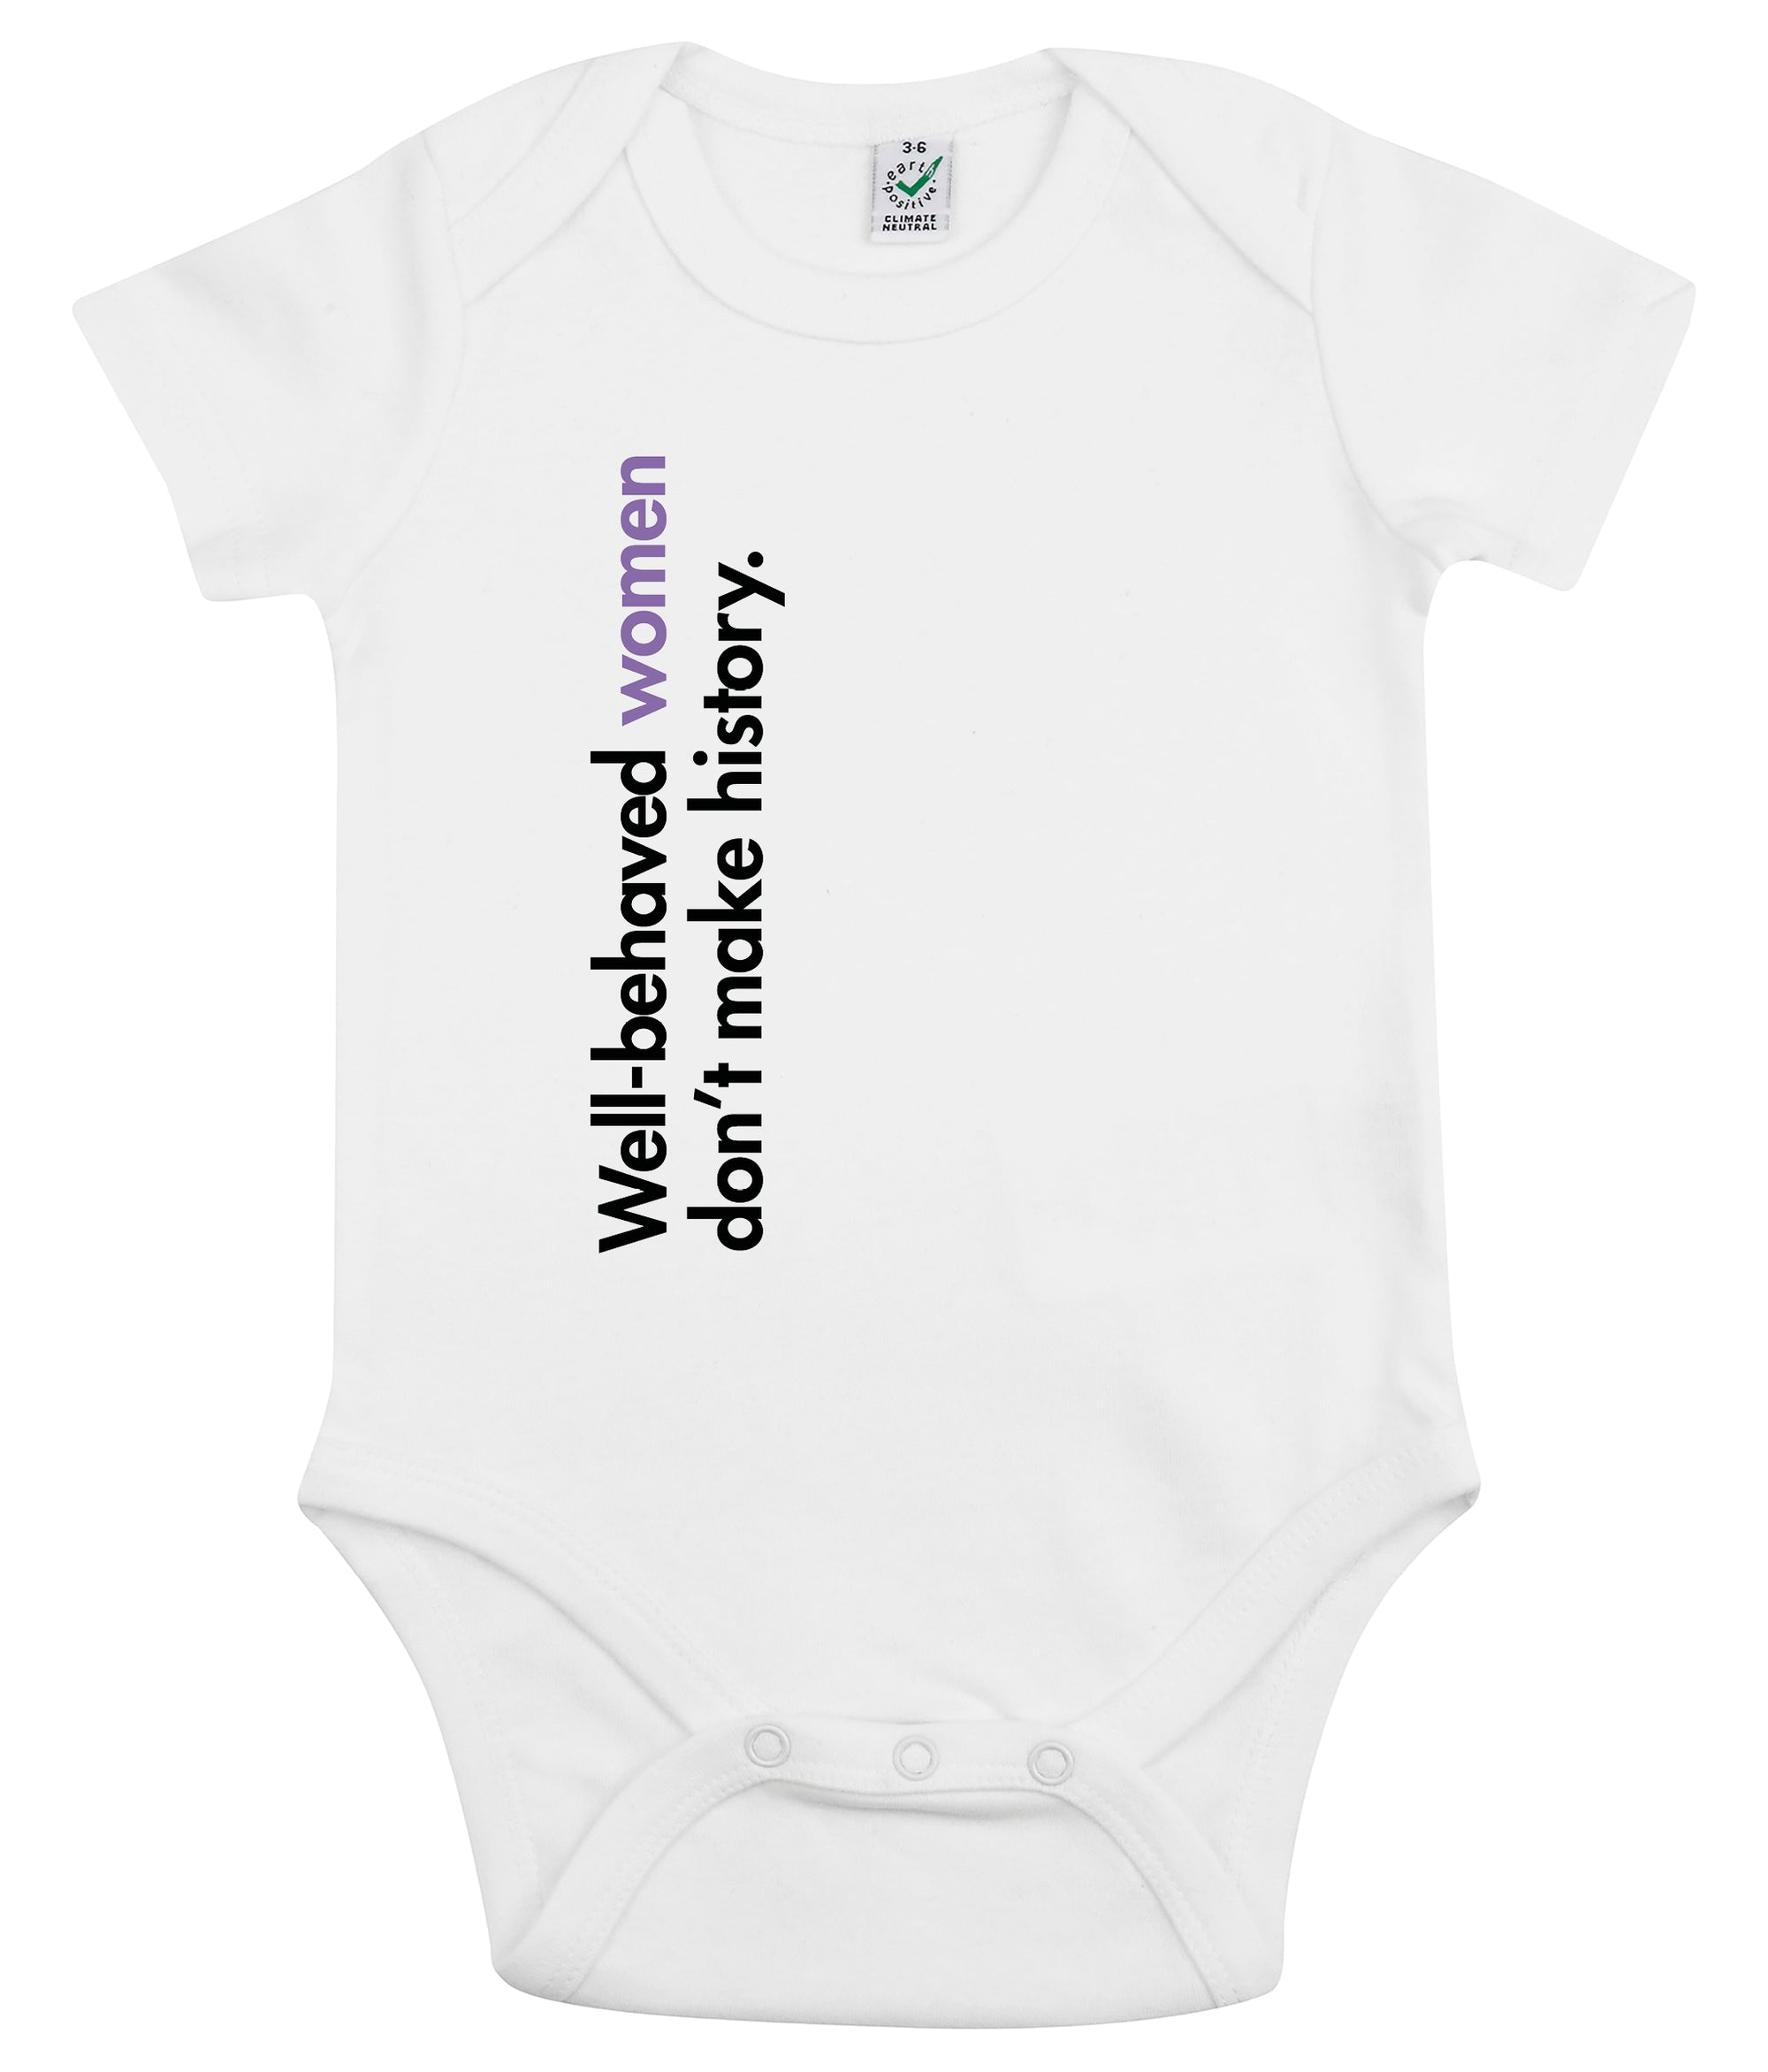 Well Behaved Women Don't Make History Organic Combed Cotton Babygrow White